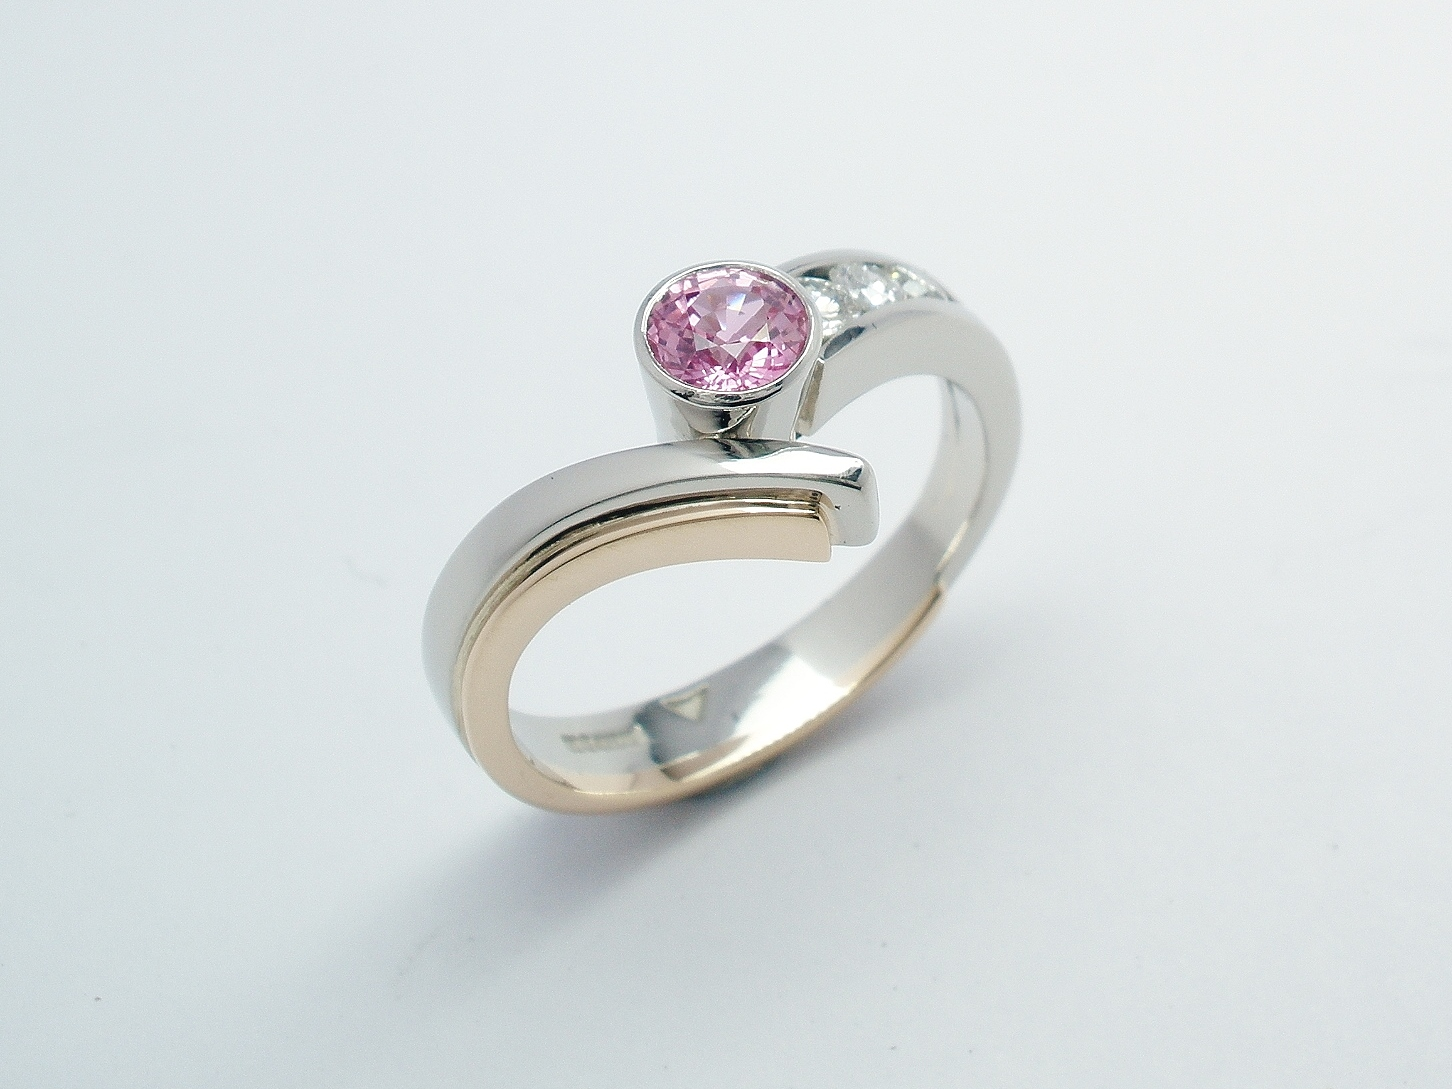 A round pink sapphire and diamond 4 stone ring mounted in palladium, platinum & 9ct red gold.